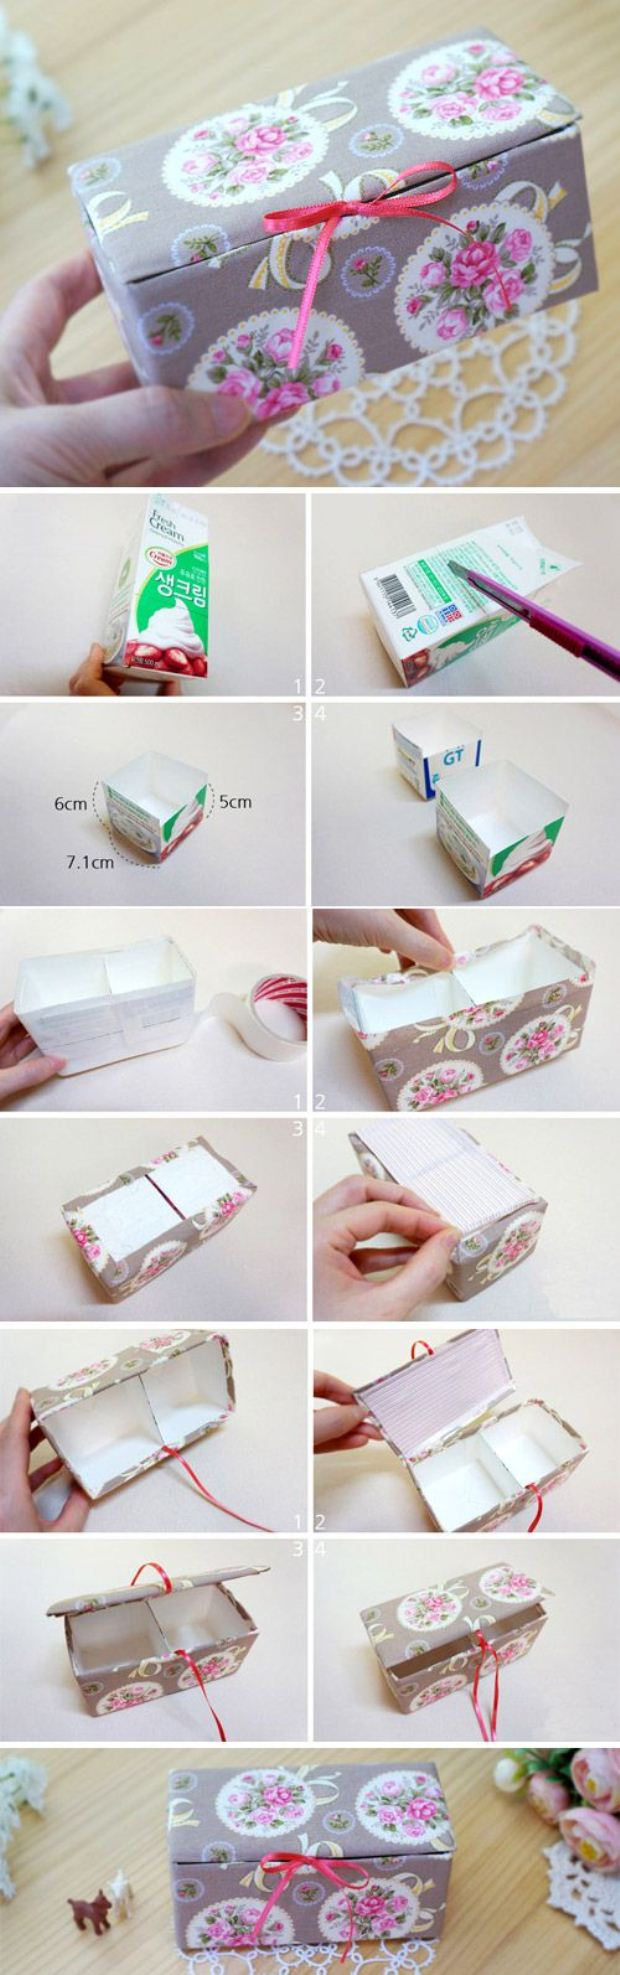 diy-Cosmetic-bag-organizer-2